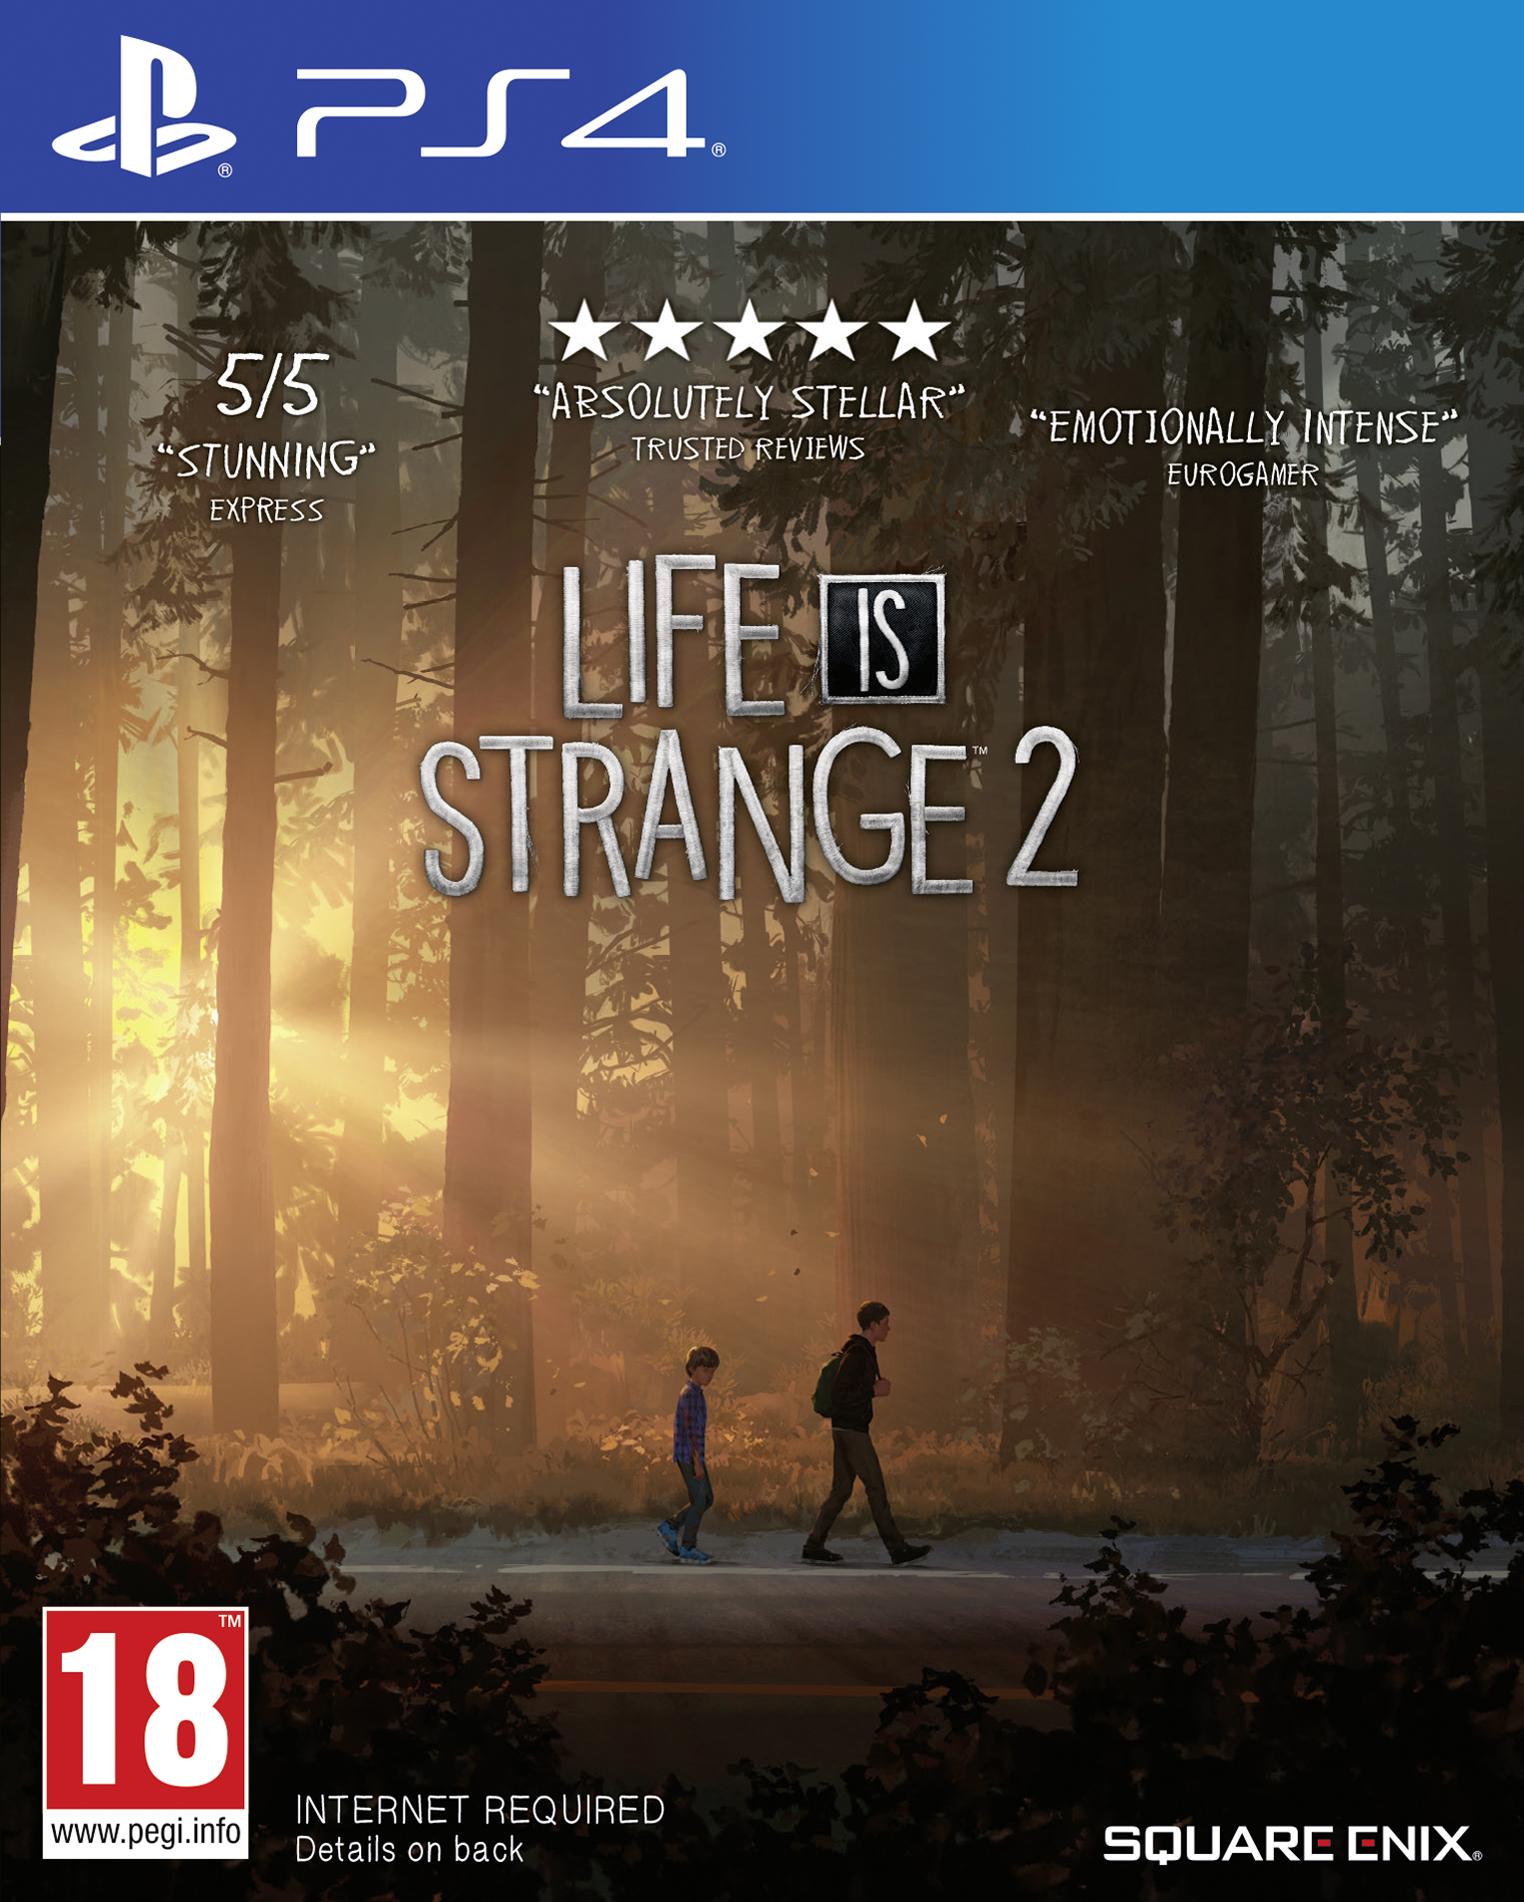 Life is Strange: Before the Storm Releases Video from